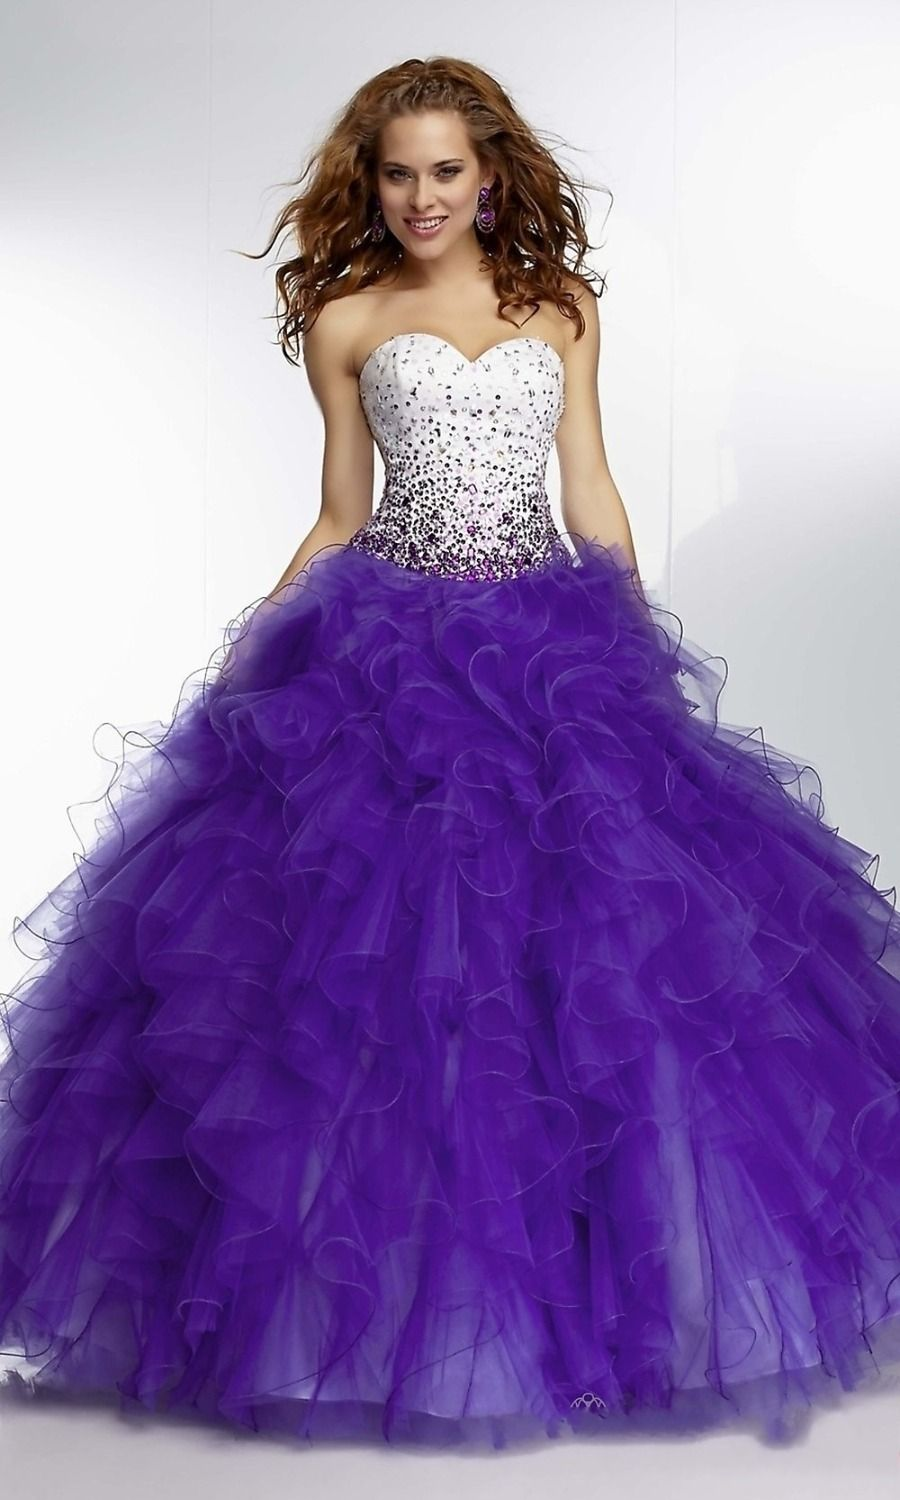 Newest Design Sweetheart Purple Red Prom Dresses Tiered Ruffles ...